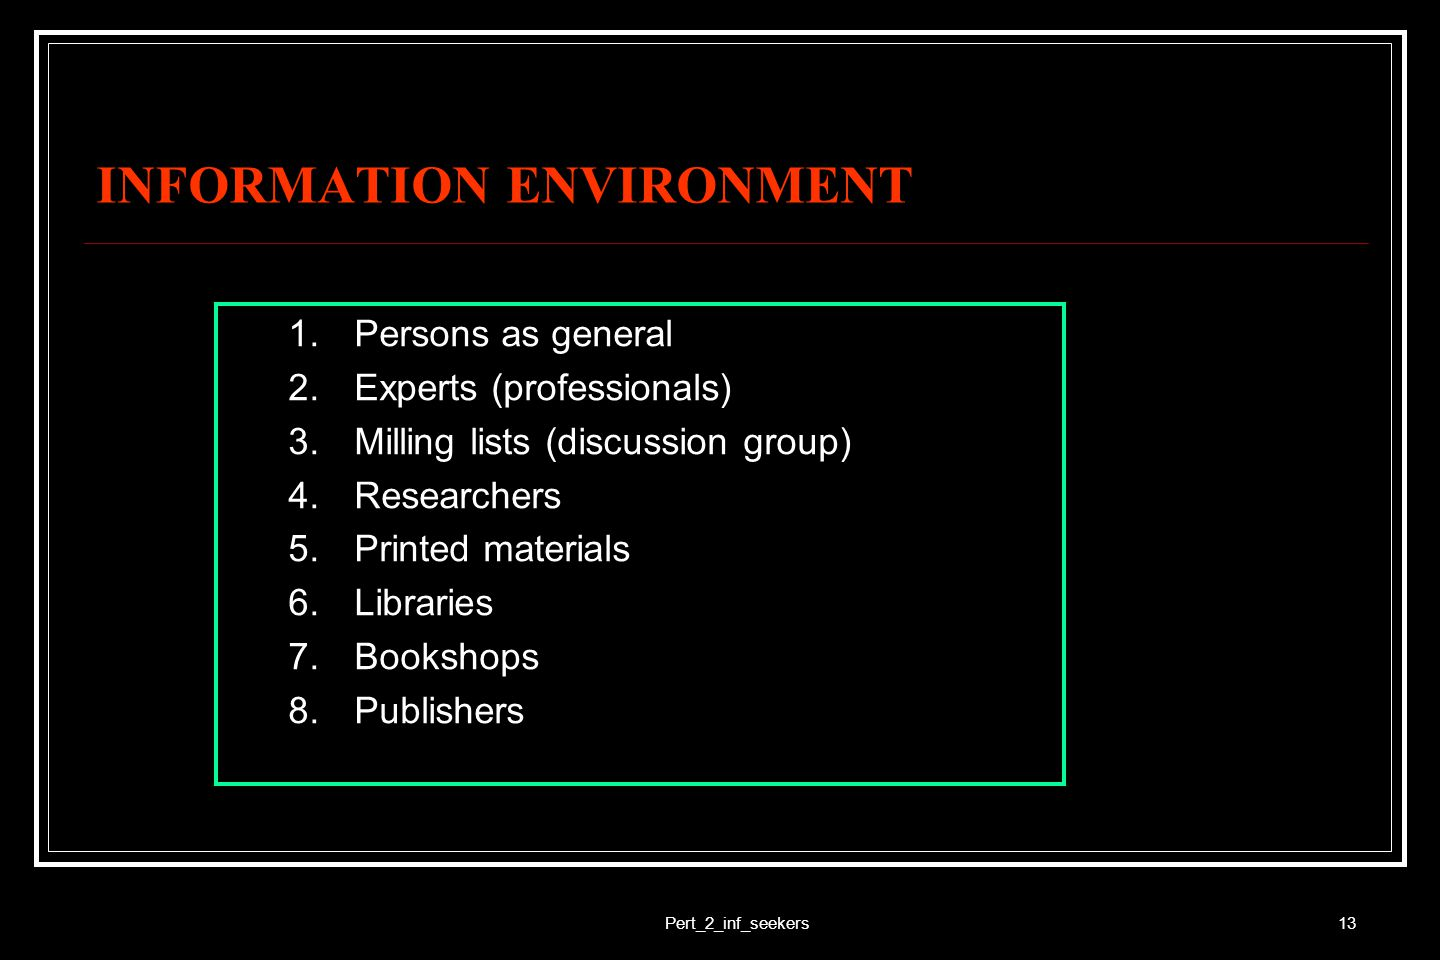 Pert_2_inf_seekers14 INFORMATION ENVIRONMENT (2) 8.Information centers 9.Information agencies (information brokers) 10.Organisations 11.Offices 12.Audios 13.Visuals 14.Audiovisuals 15.Electronic information 16.Digital information